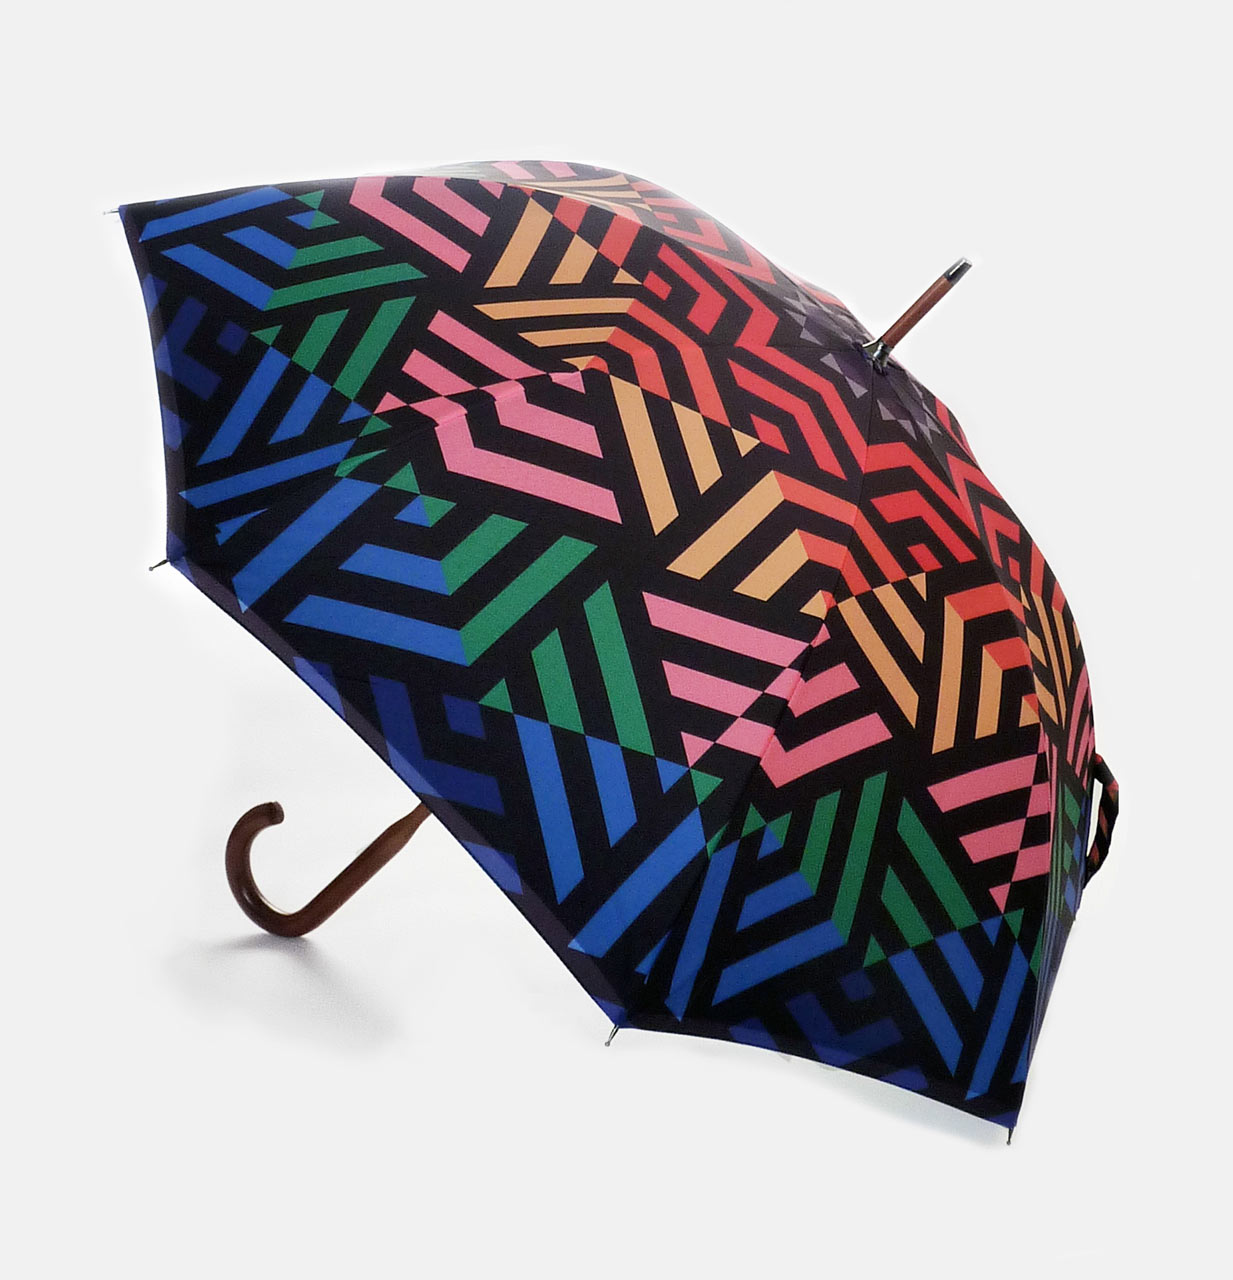 DavidDavid-Walking-Stick-Umbrella-5-U4